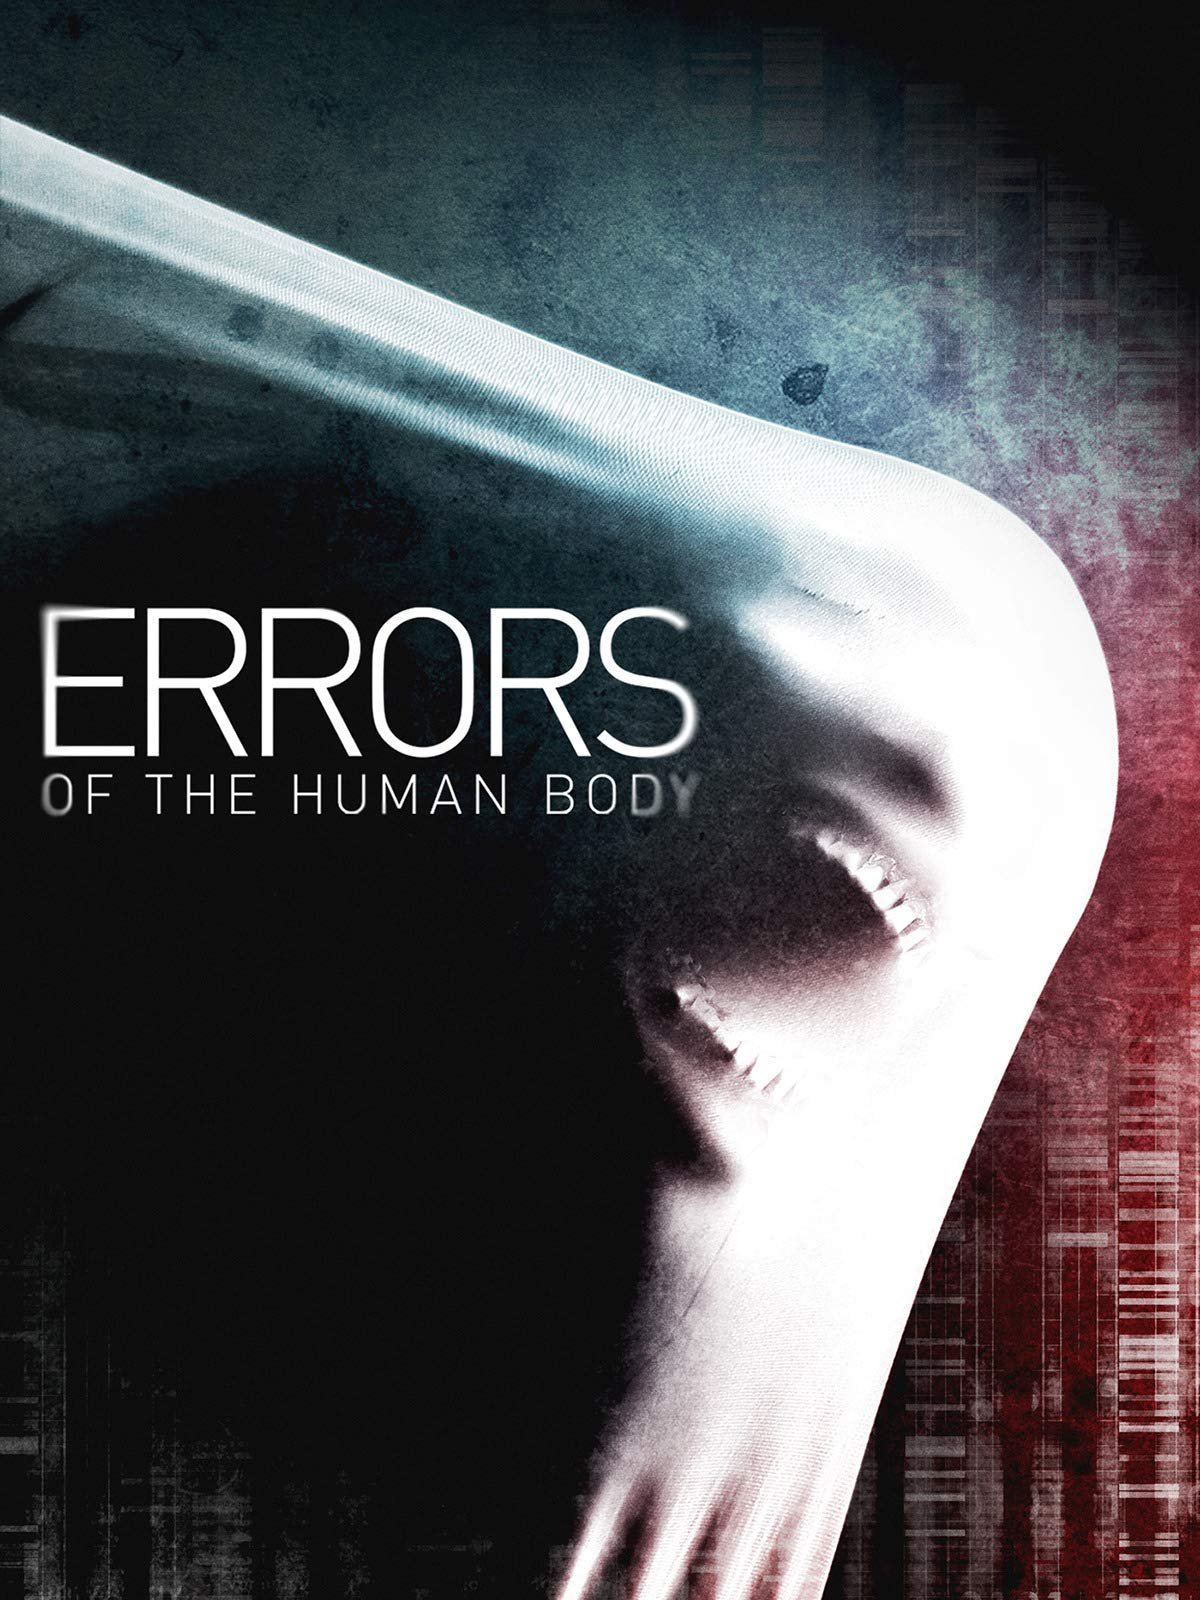 Errors of The Human Body